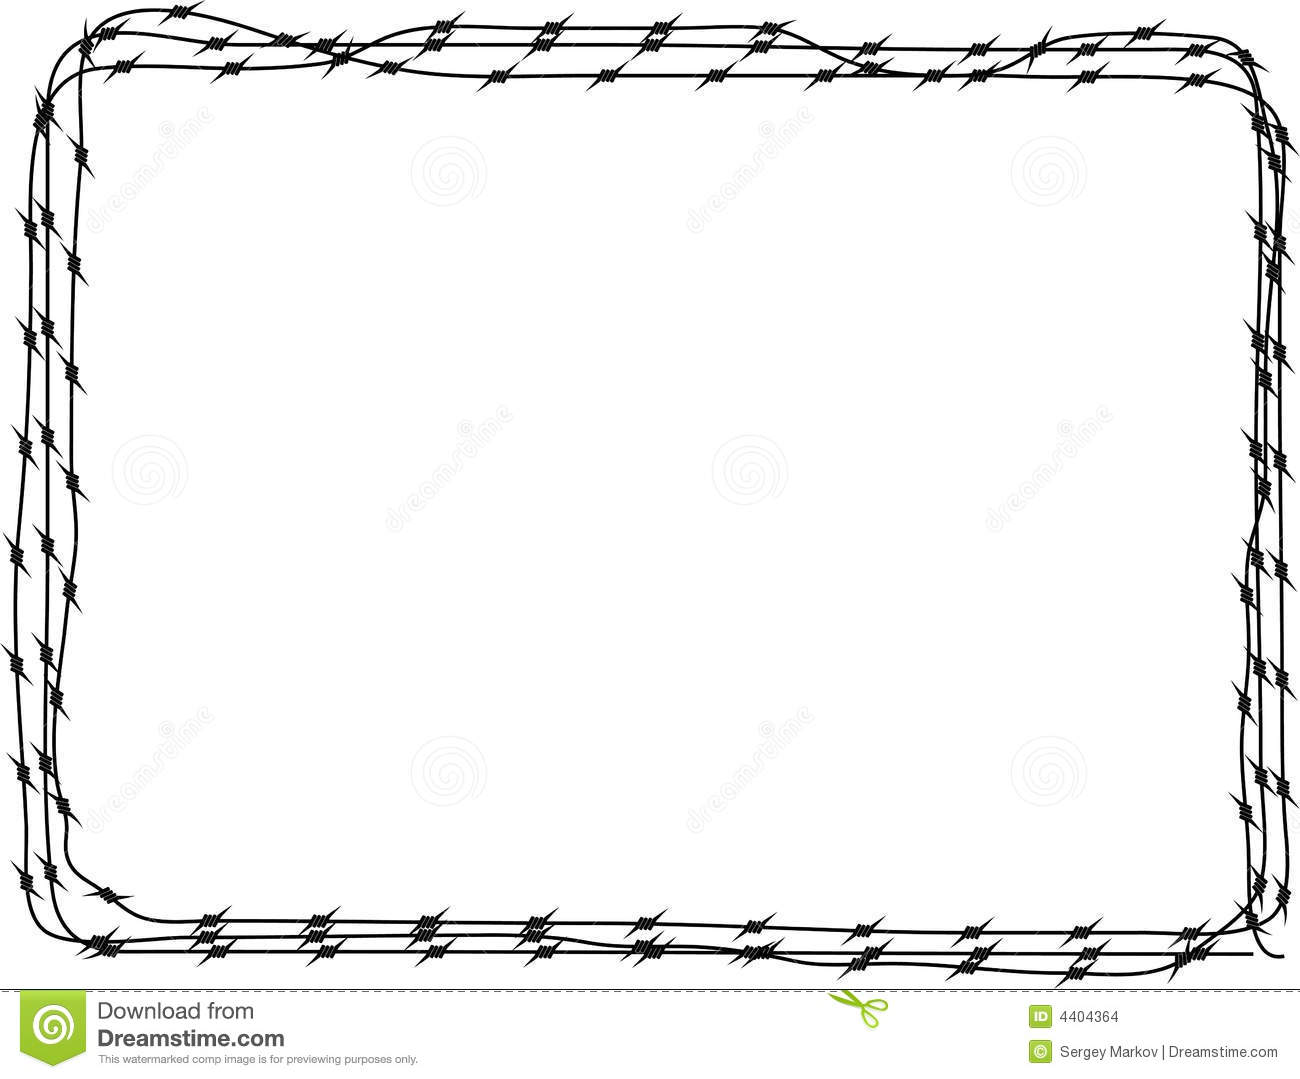 Background - Barbed wire 3 stock vector. Illustration of color - 4404364